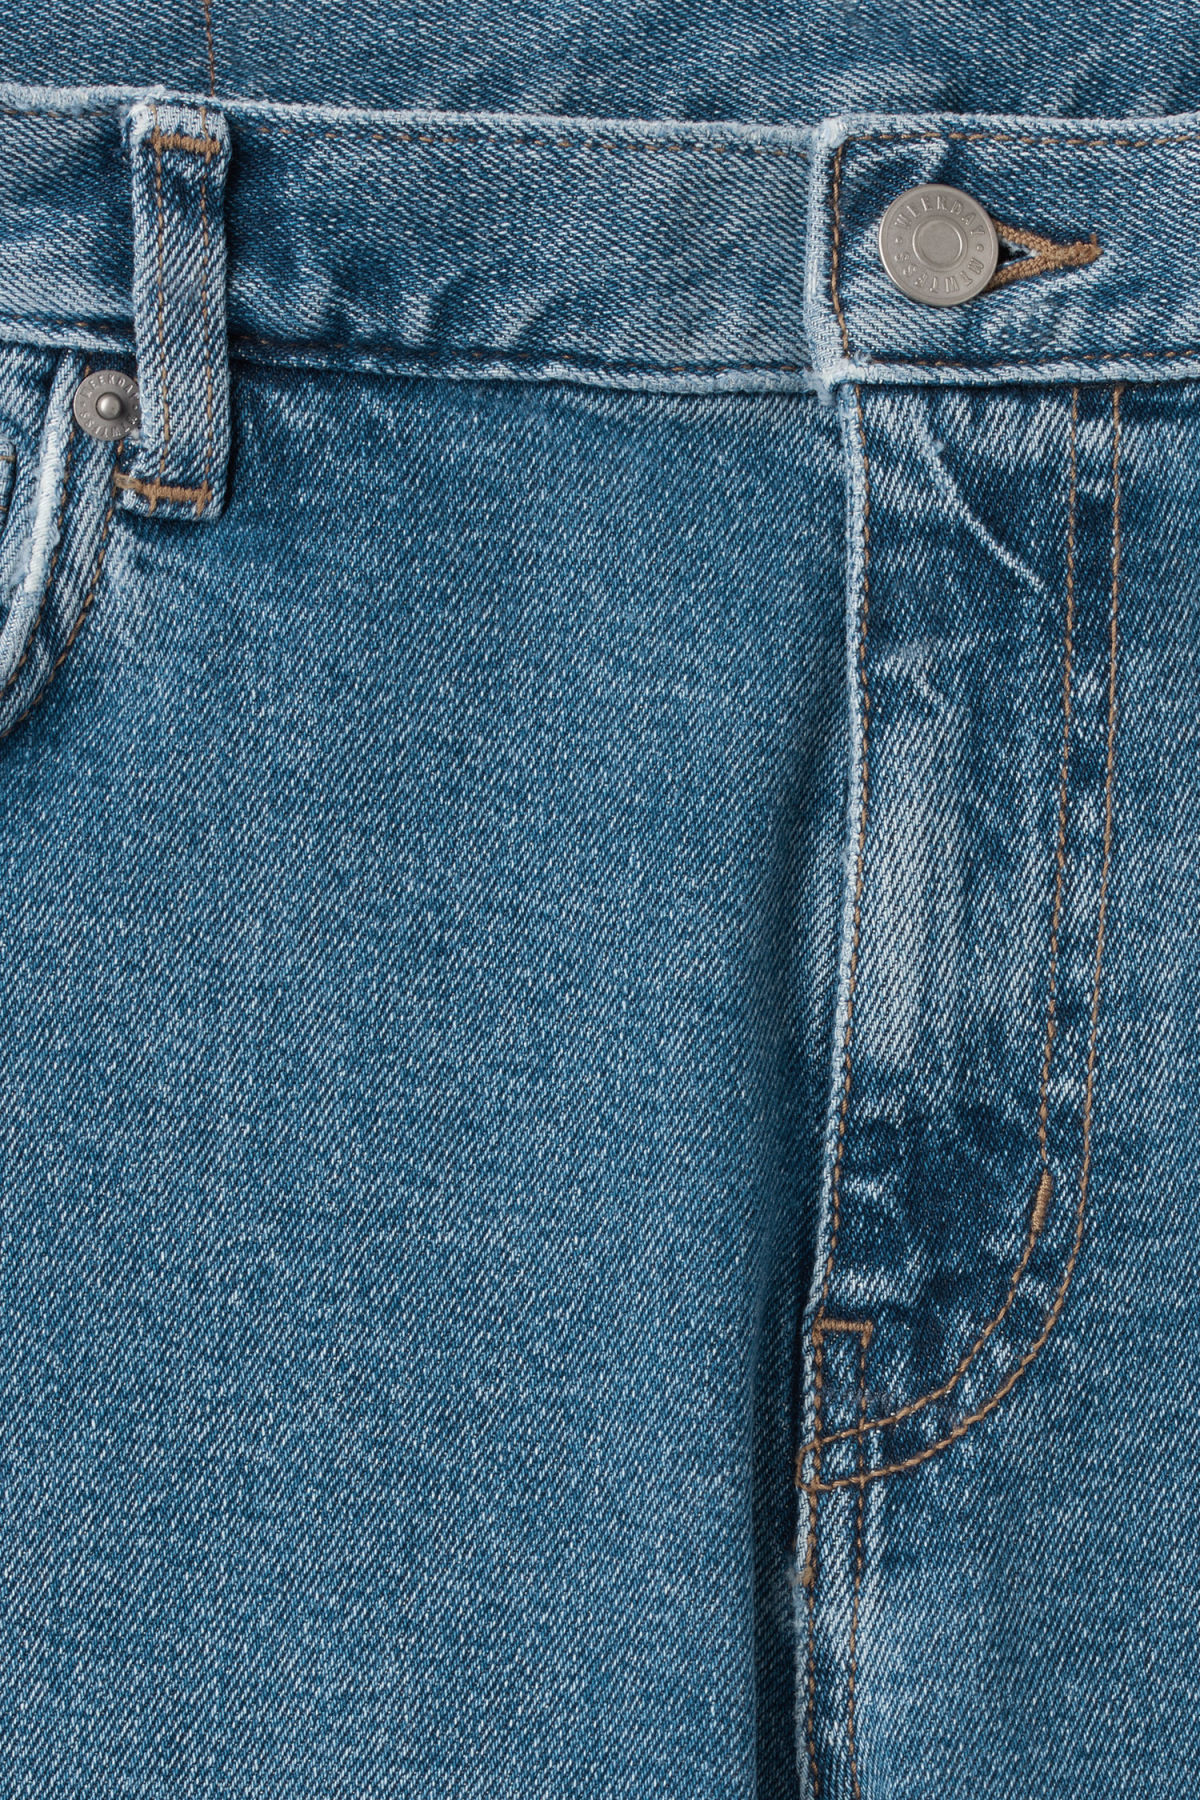 Detailed image of Weekday form arizona blue jeans in blue